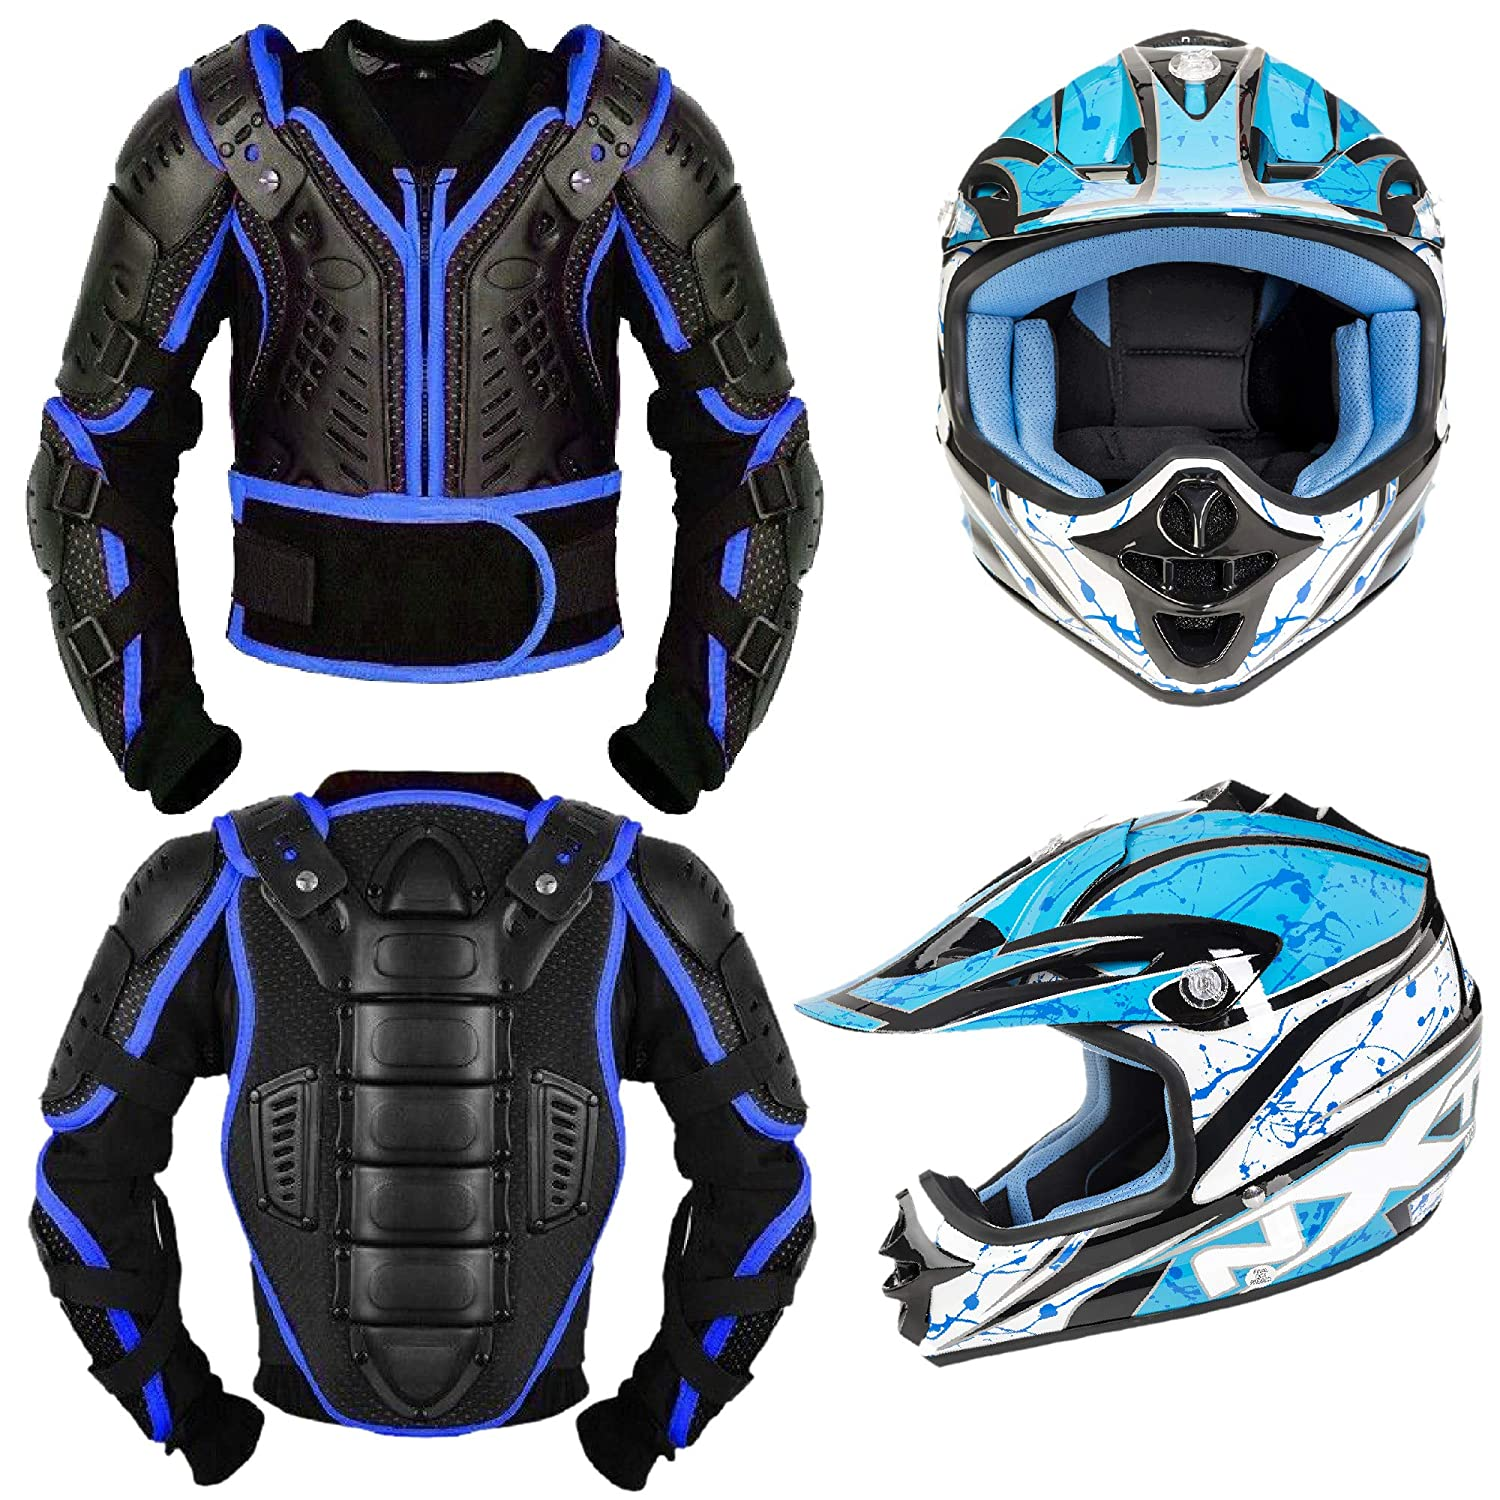 3-4 Years Leopard CUB Kids Motocross CAMO Suit Children Motorbike Motorcycle Race Clothing ATV Karting Suit Overall 1PC Black XS